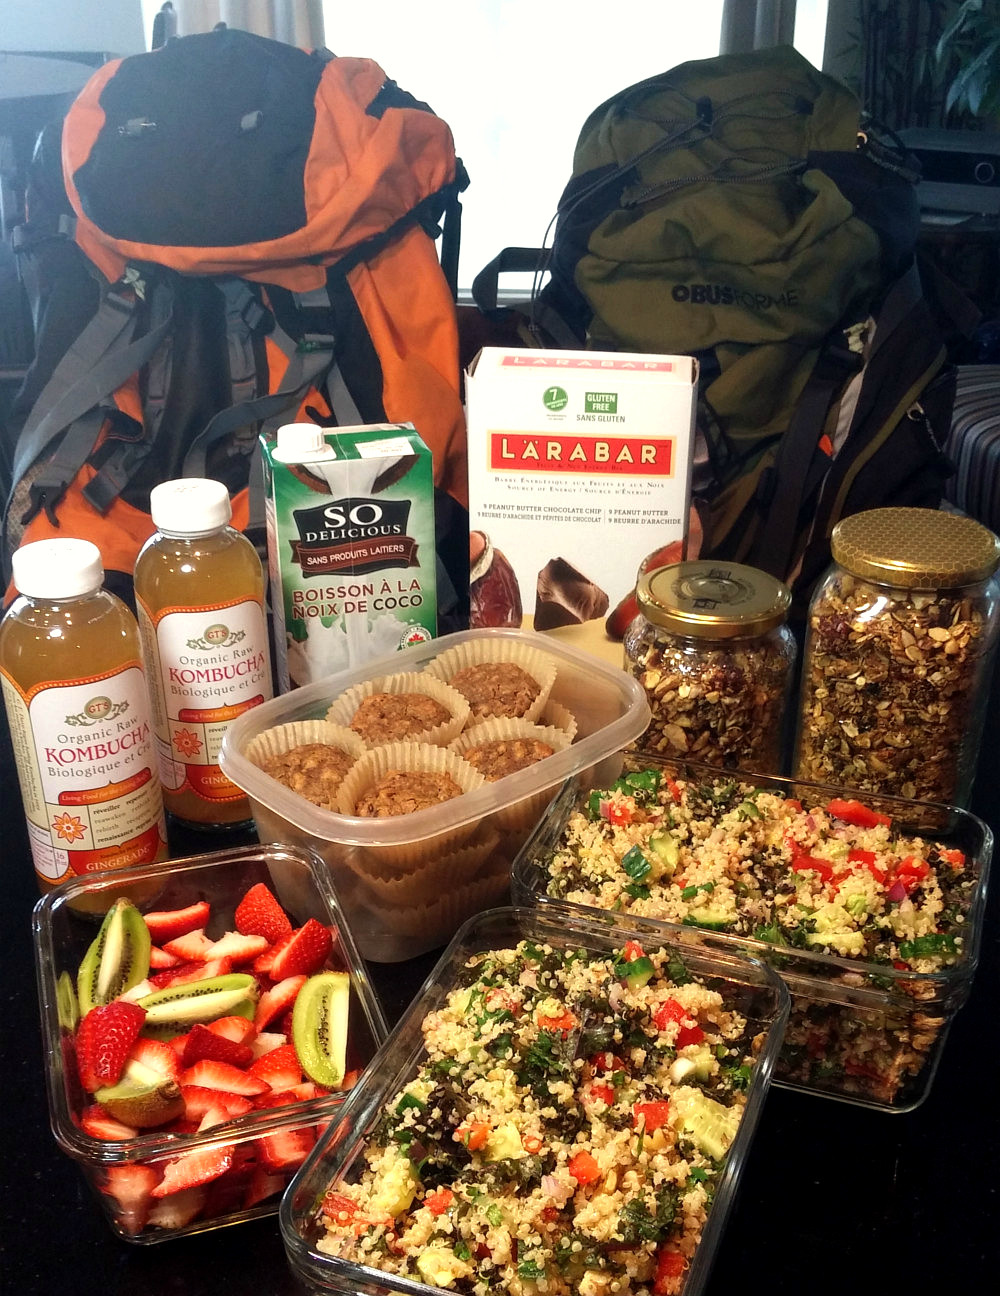 Best Road Trip Snacks Healthy  Your Healthy Guide to Road Trip Snacks and Meals